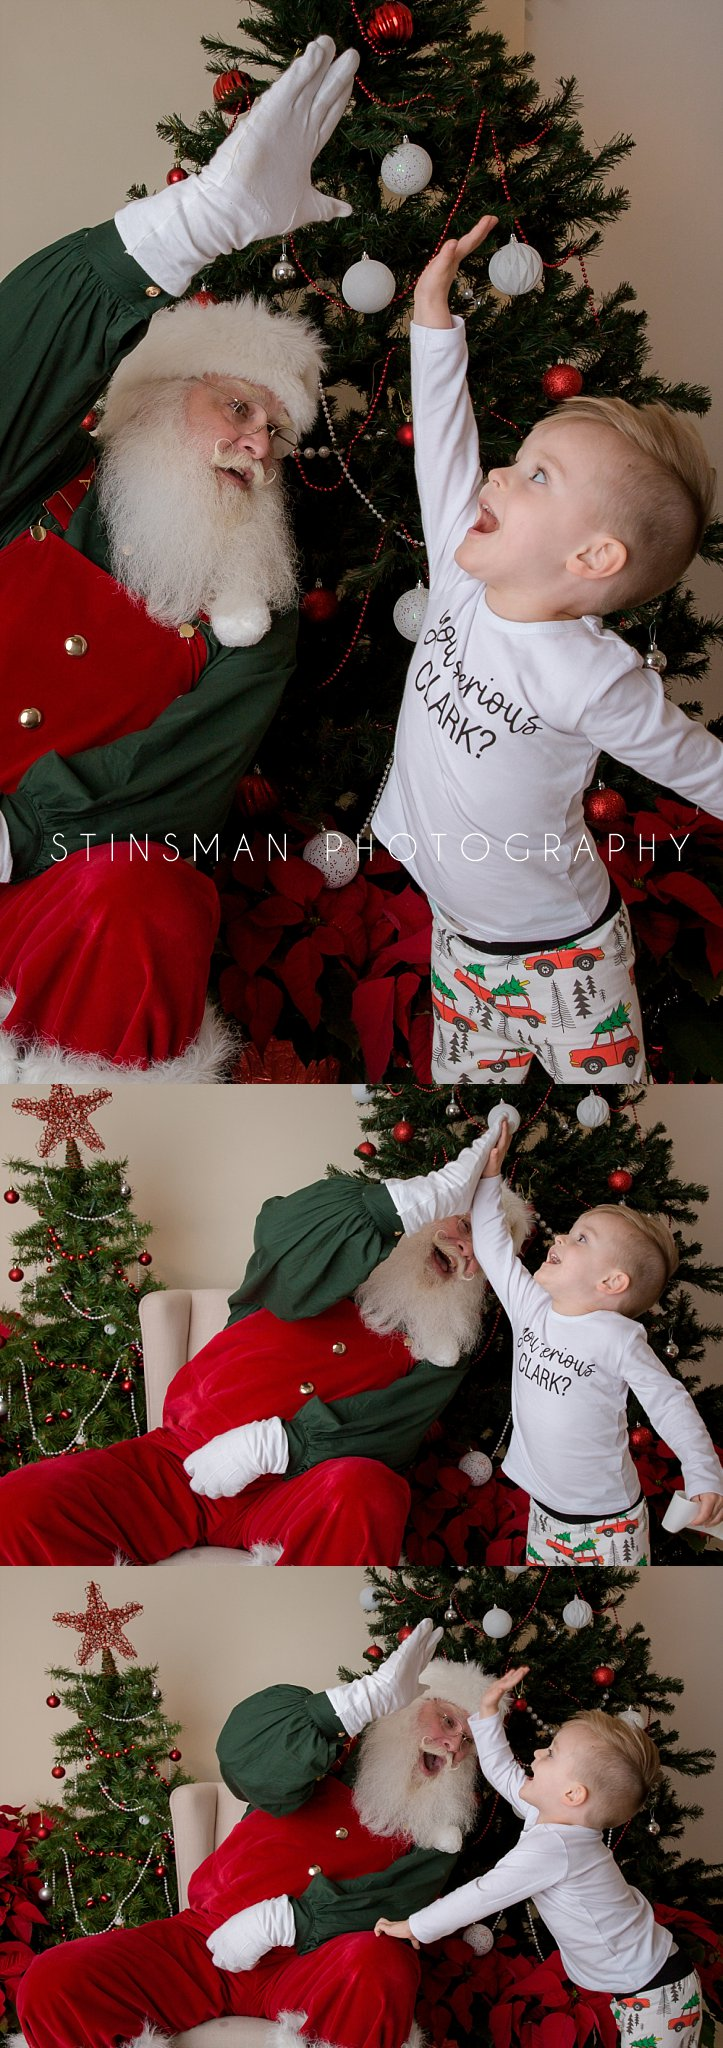 high fives from santa to a little boy in pajamas south jersey photographer